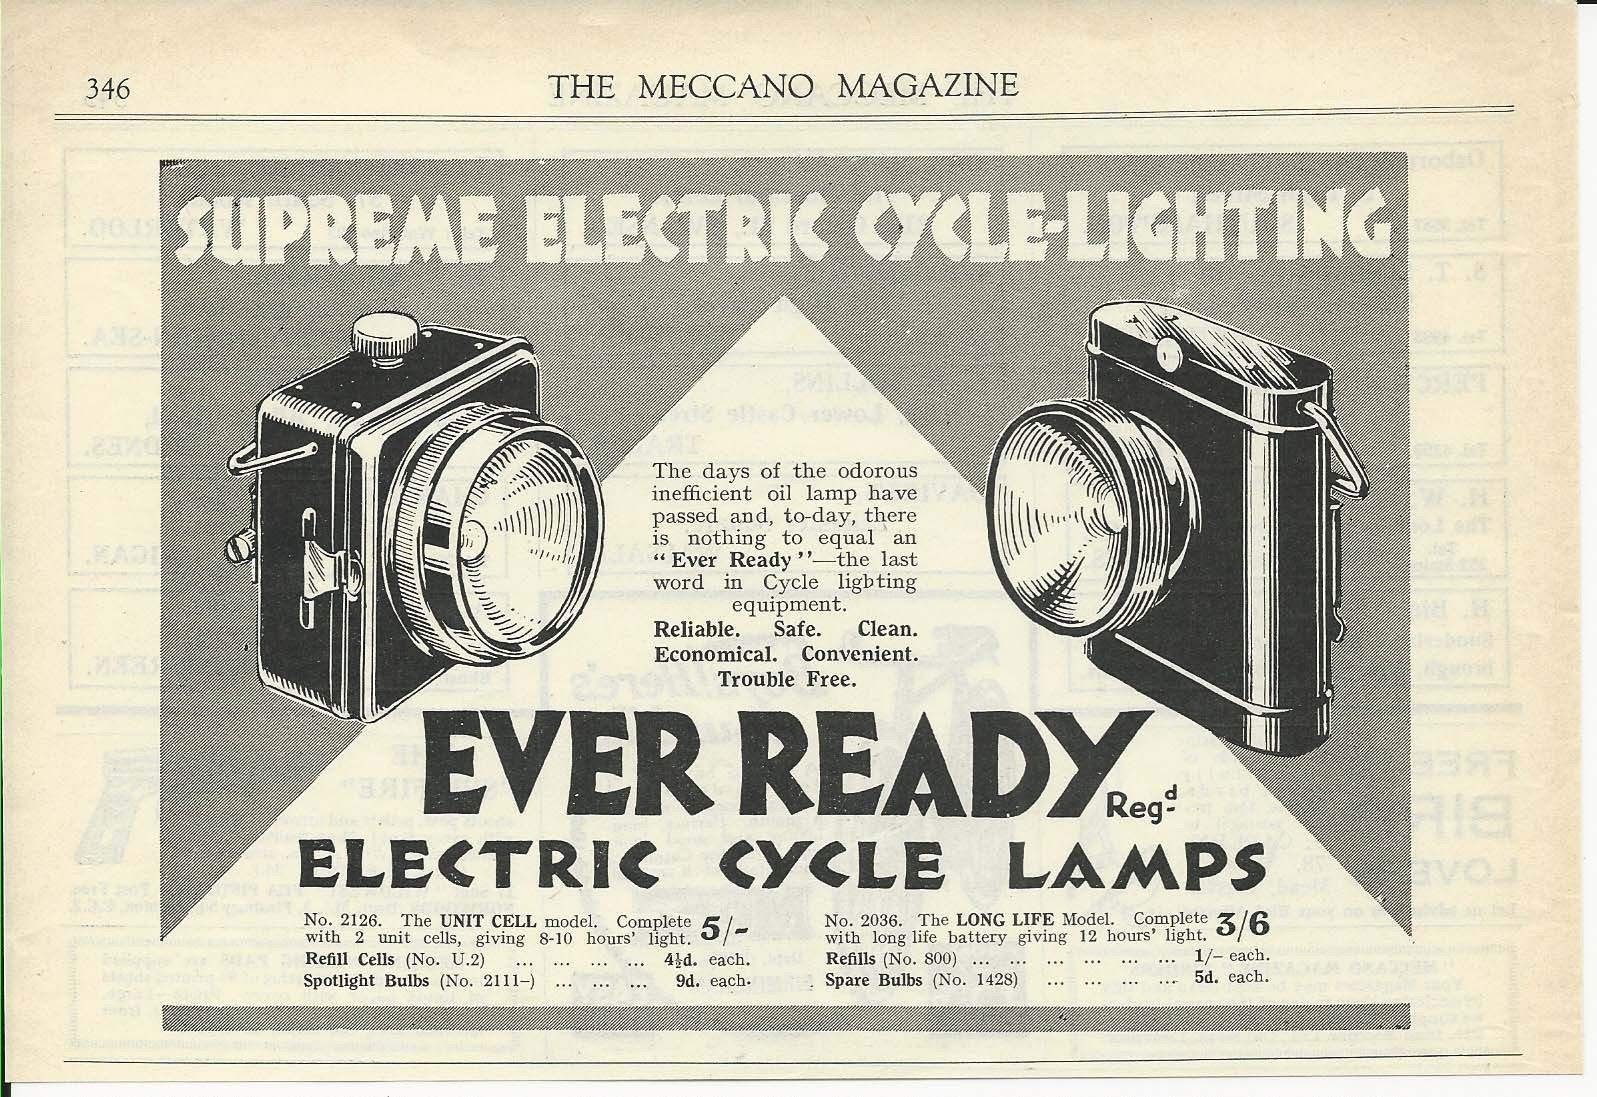 Ever Ready Electric Cycle Lamps Prices Shown 1929 Advertisement Electric Cycle Cycle Electricity